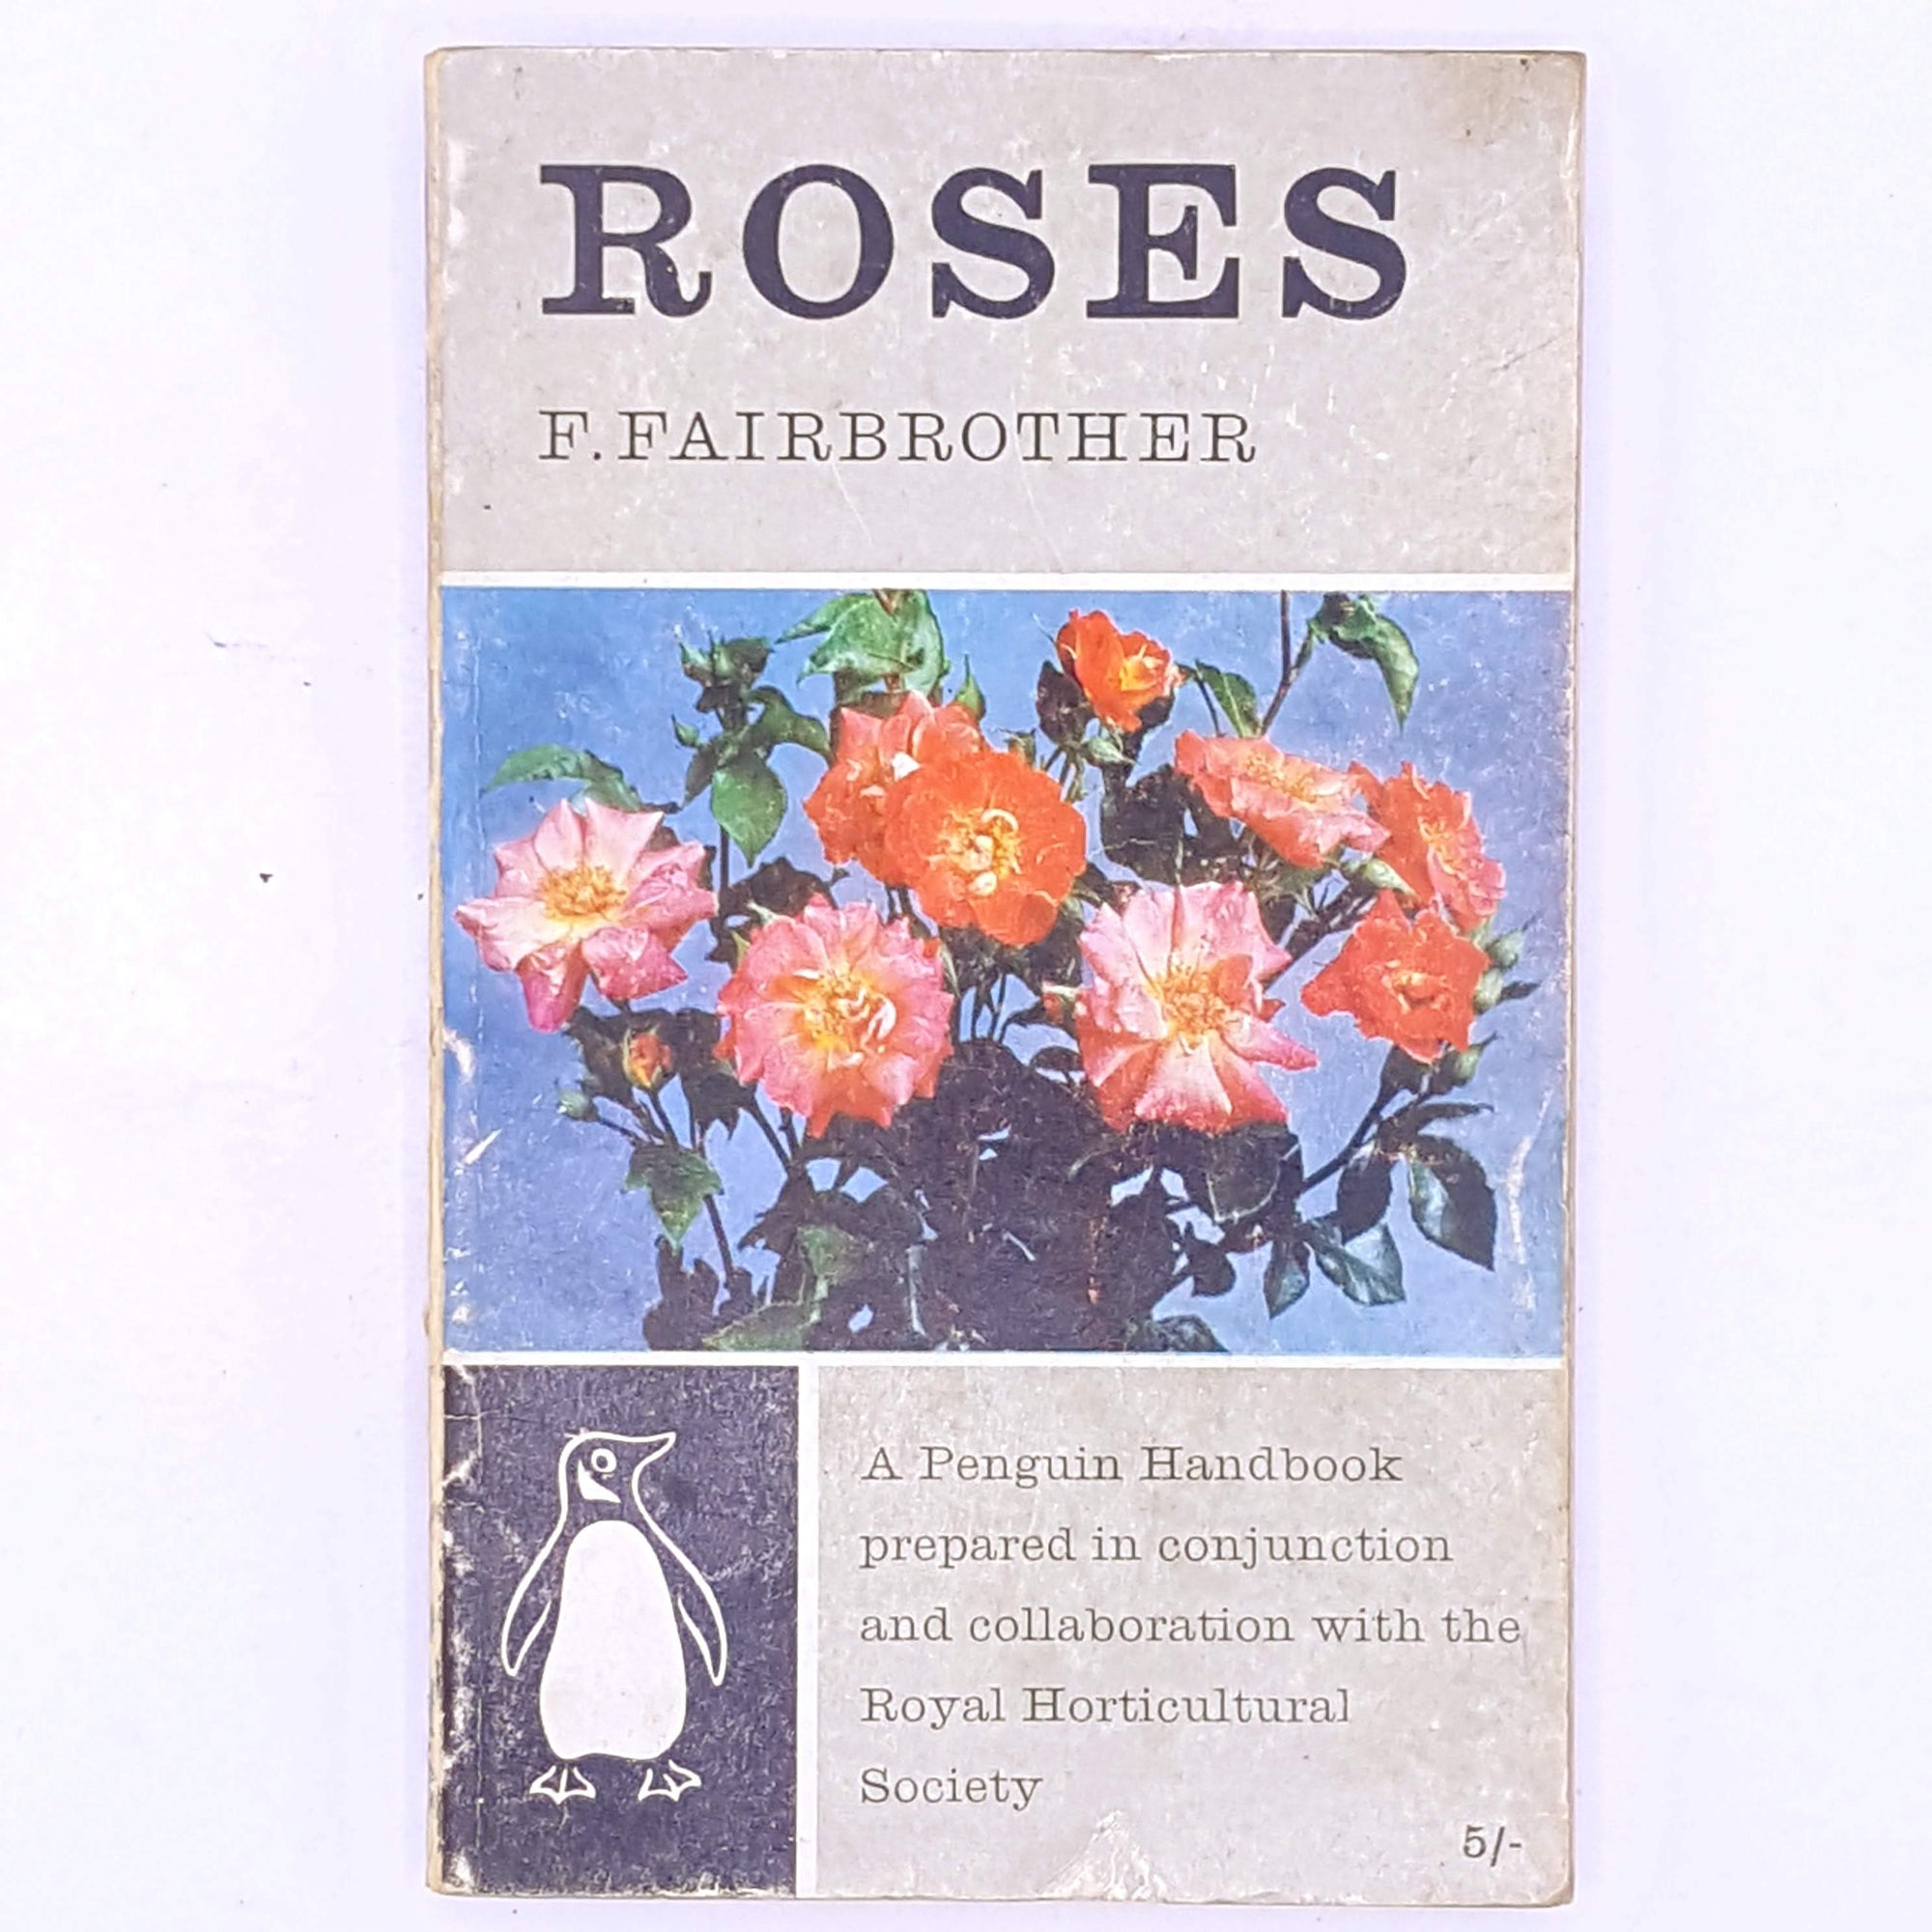 Penguin Handbook, Roses by F.Fairbrother